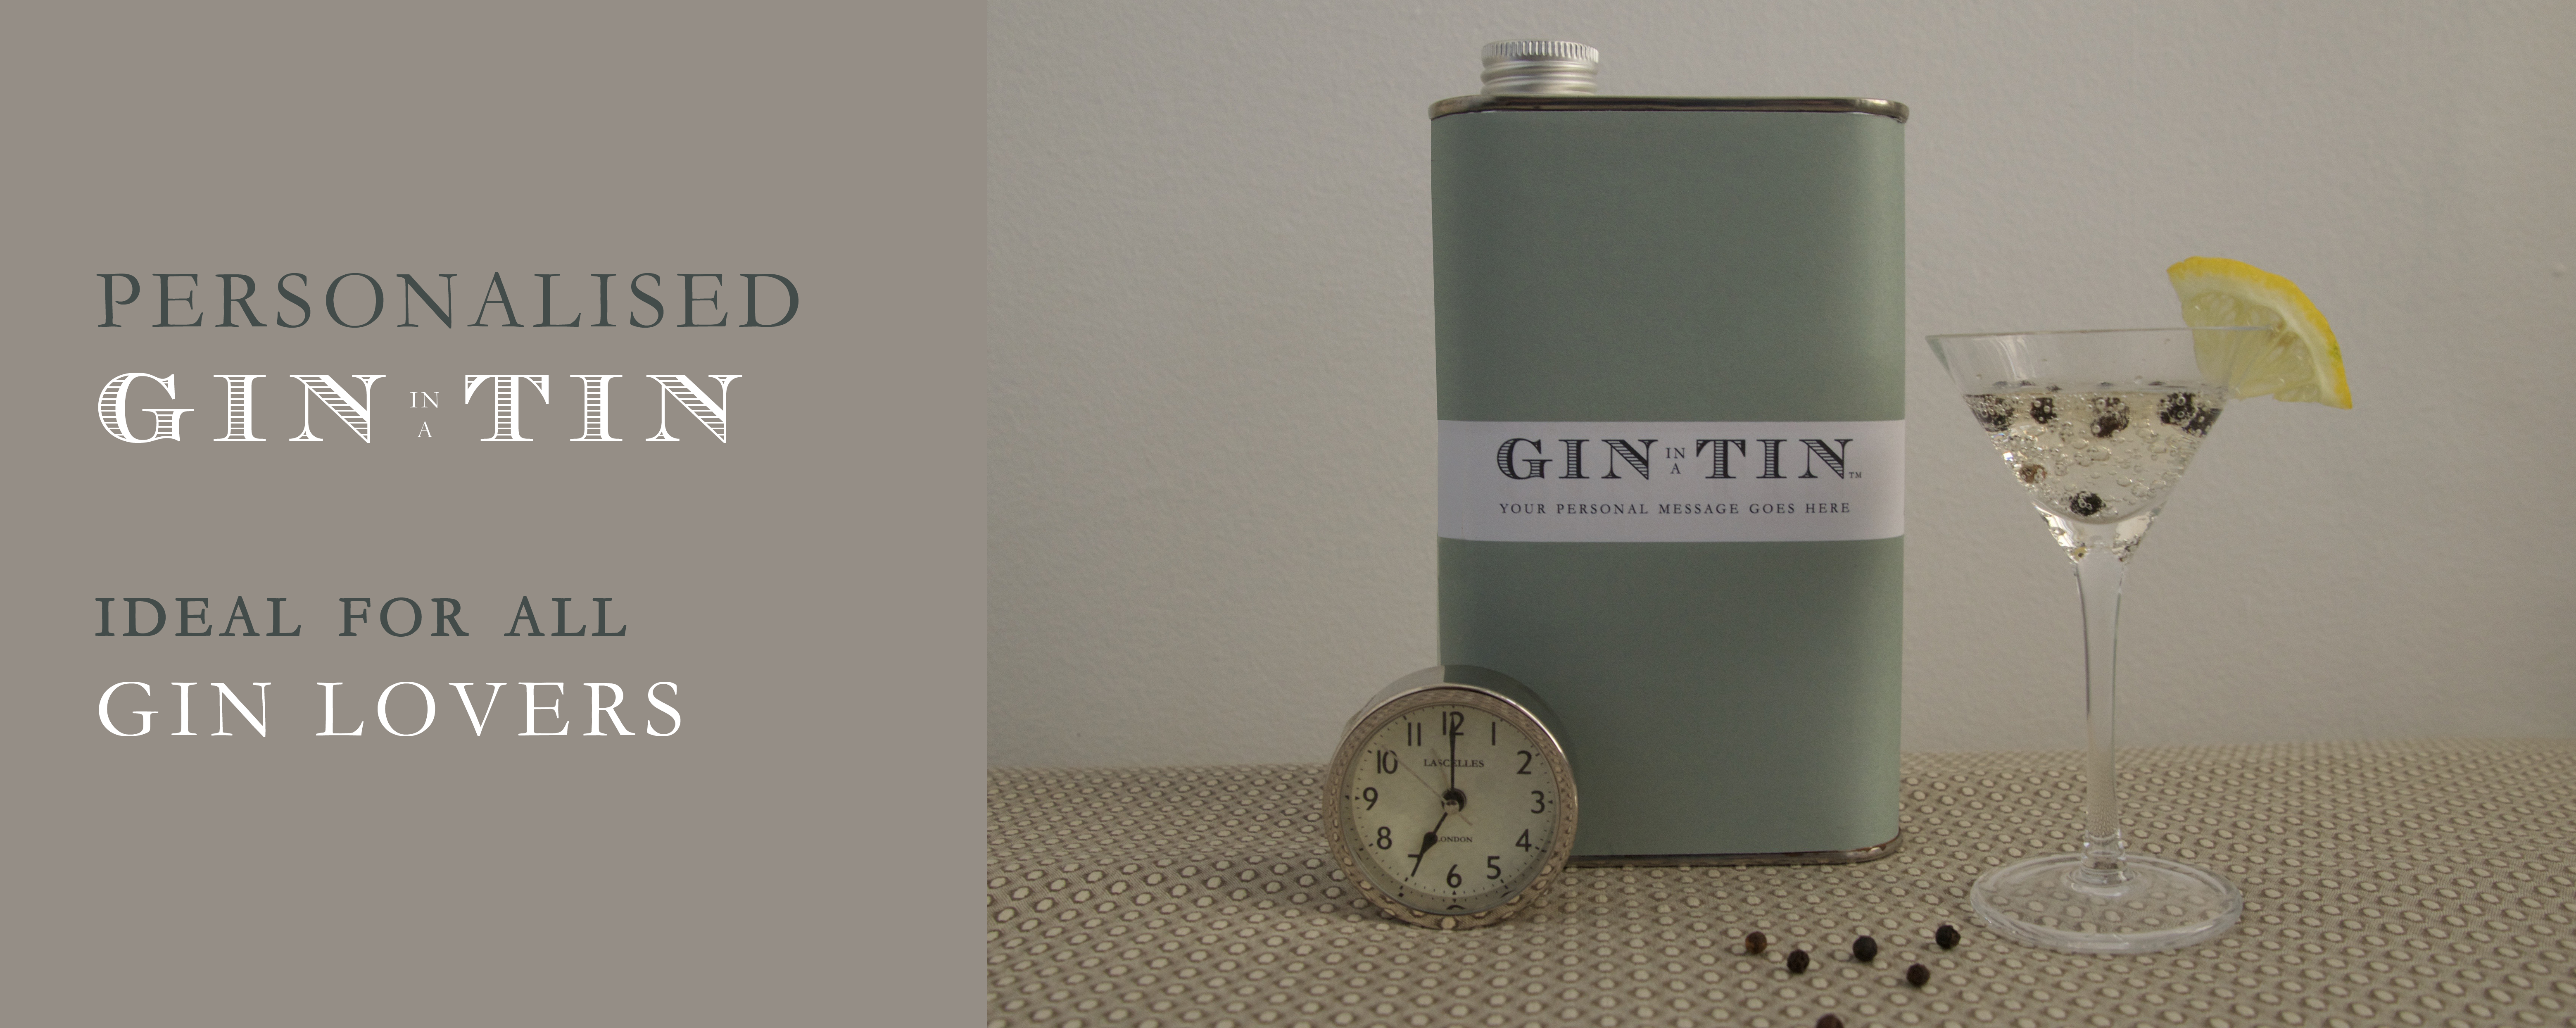 GIN  IN A TIN - Personalised Gin